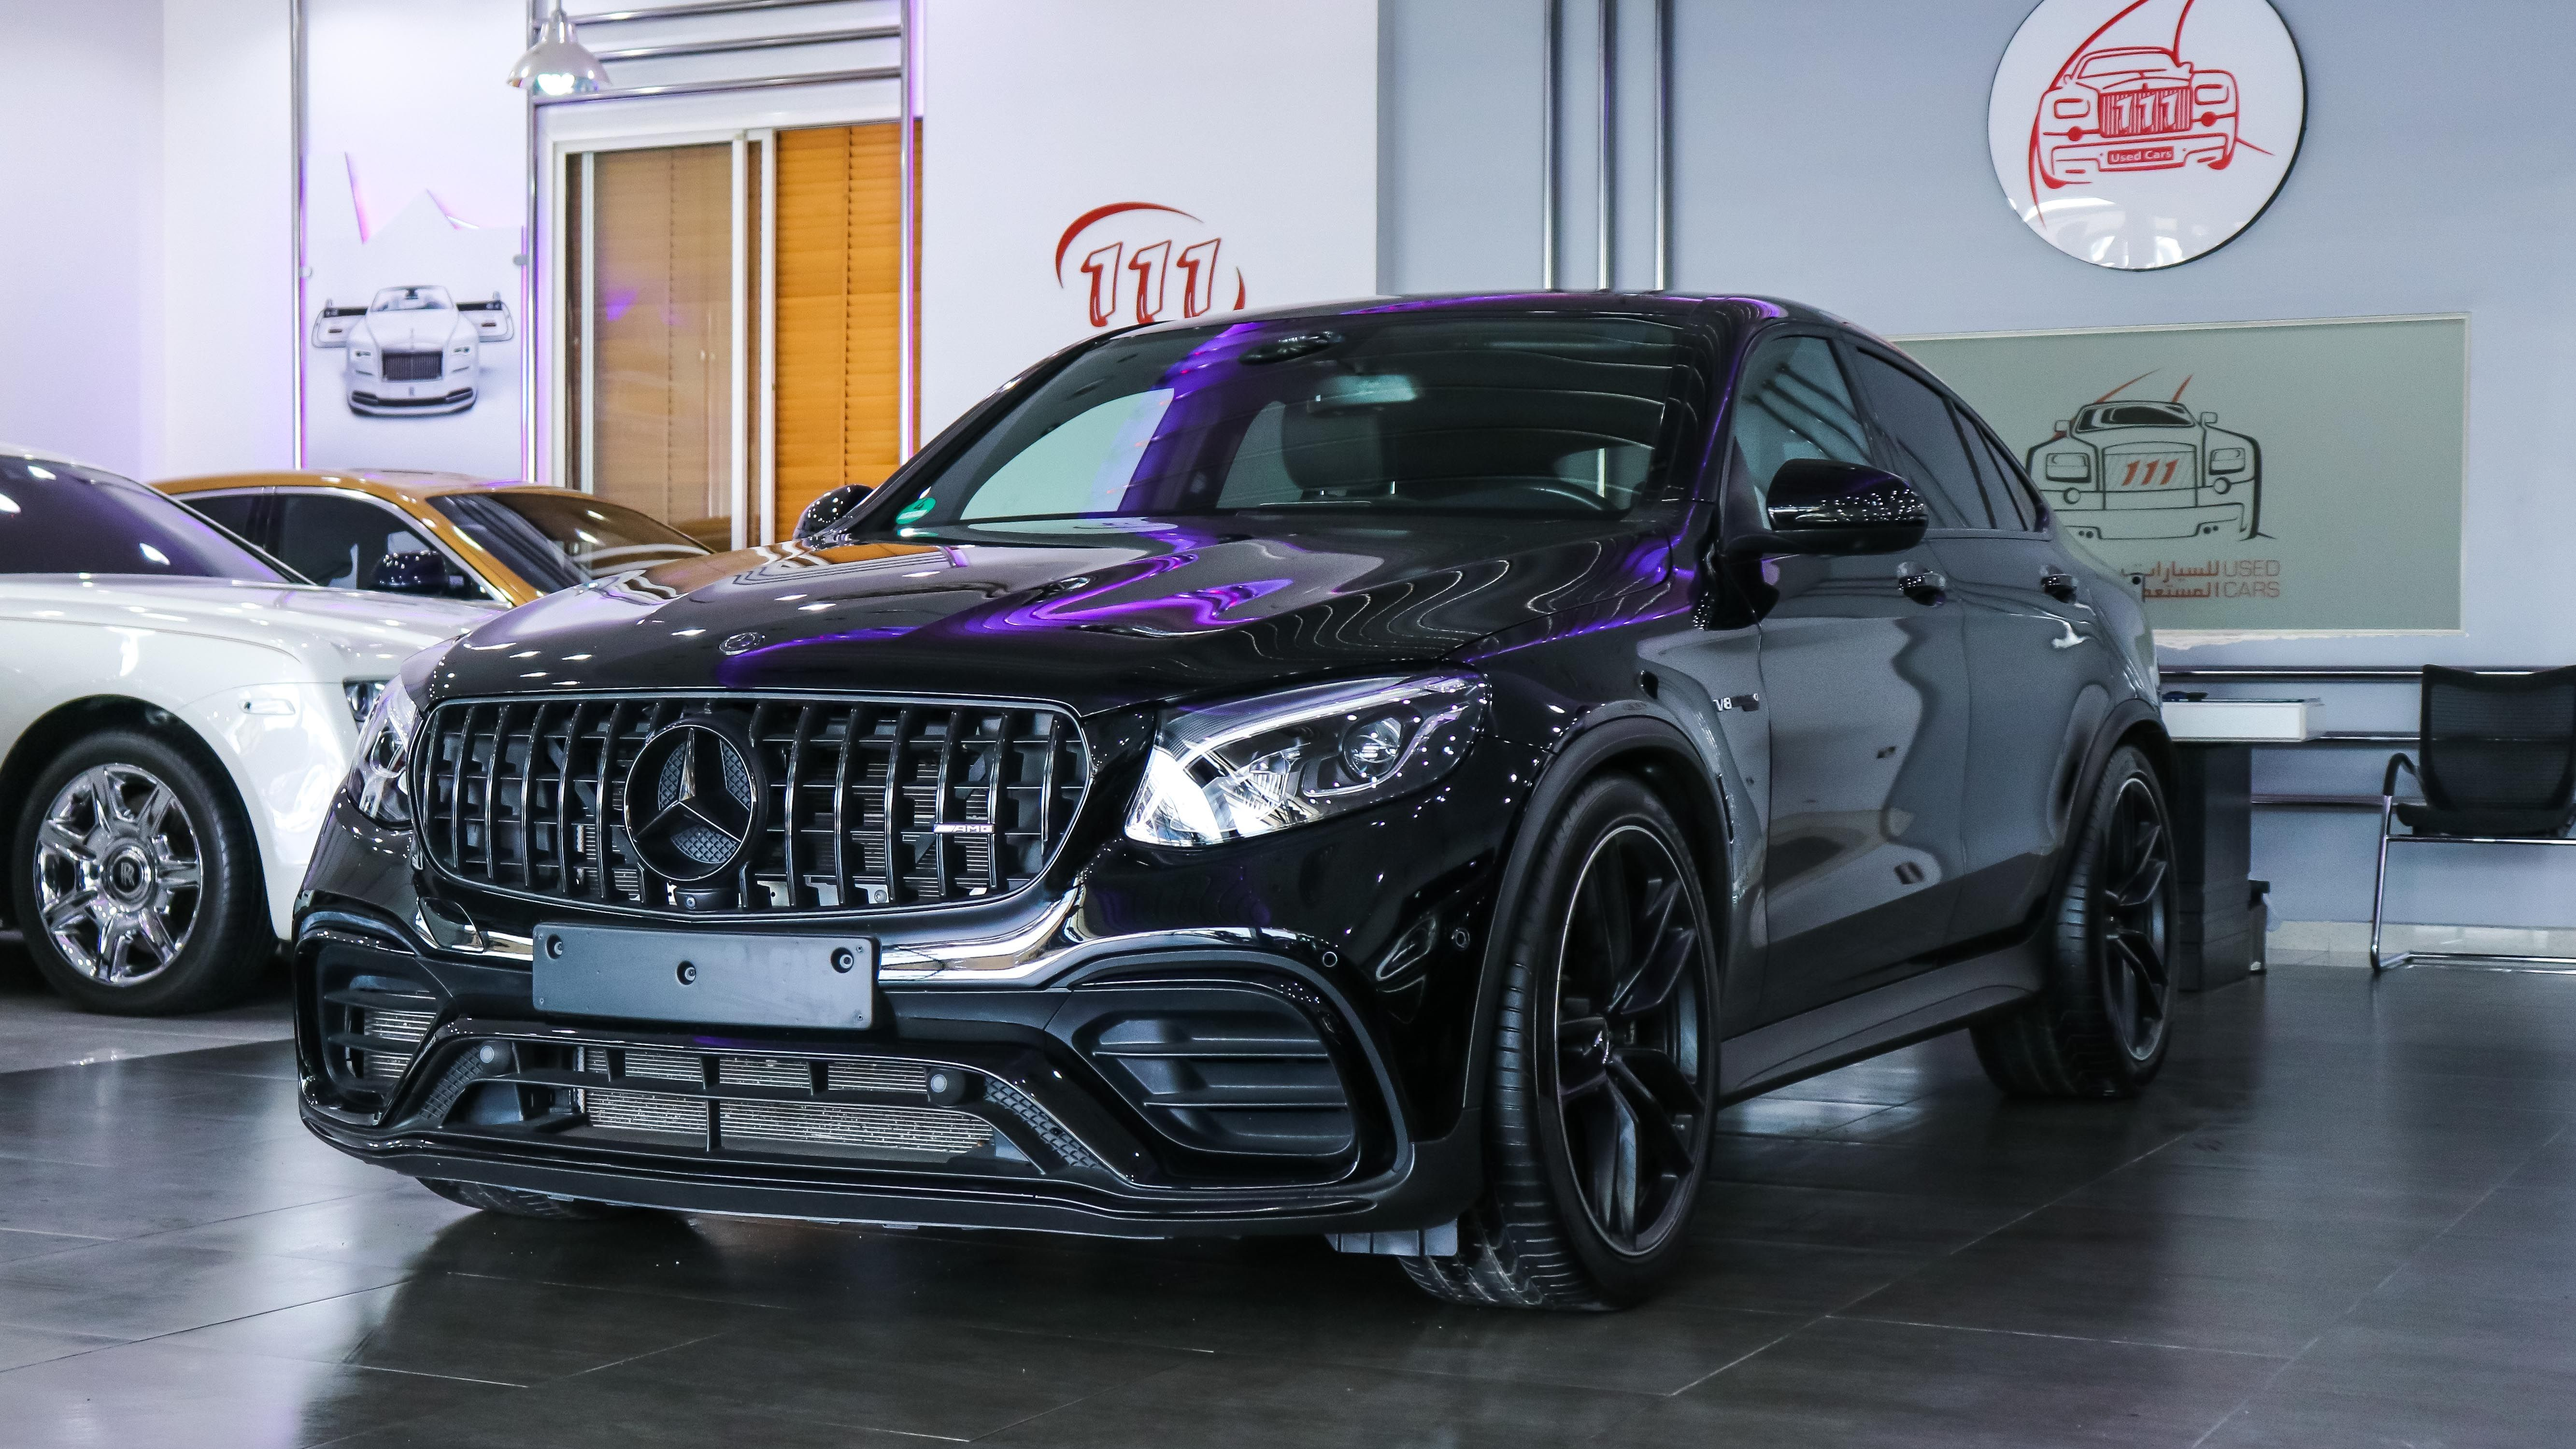 Model Mercedes Benz Glc 63 Black Edition 4matic V8 Biturbo